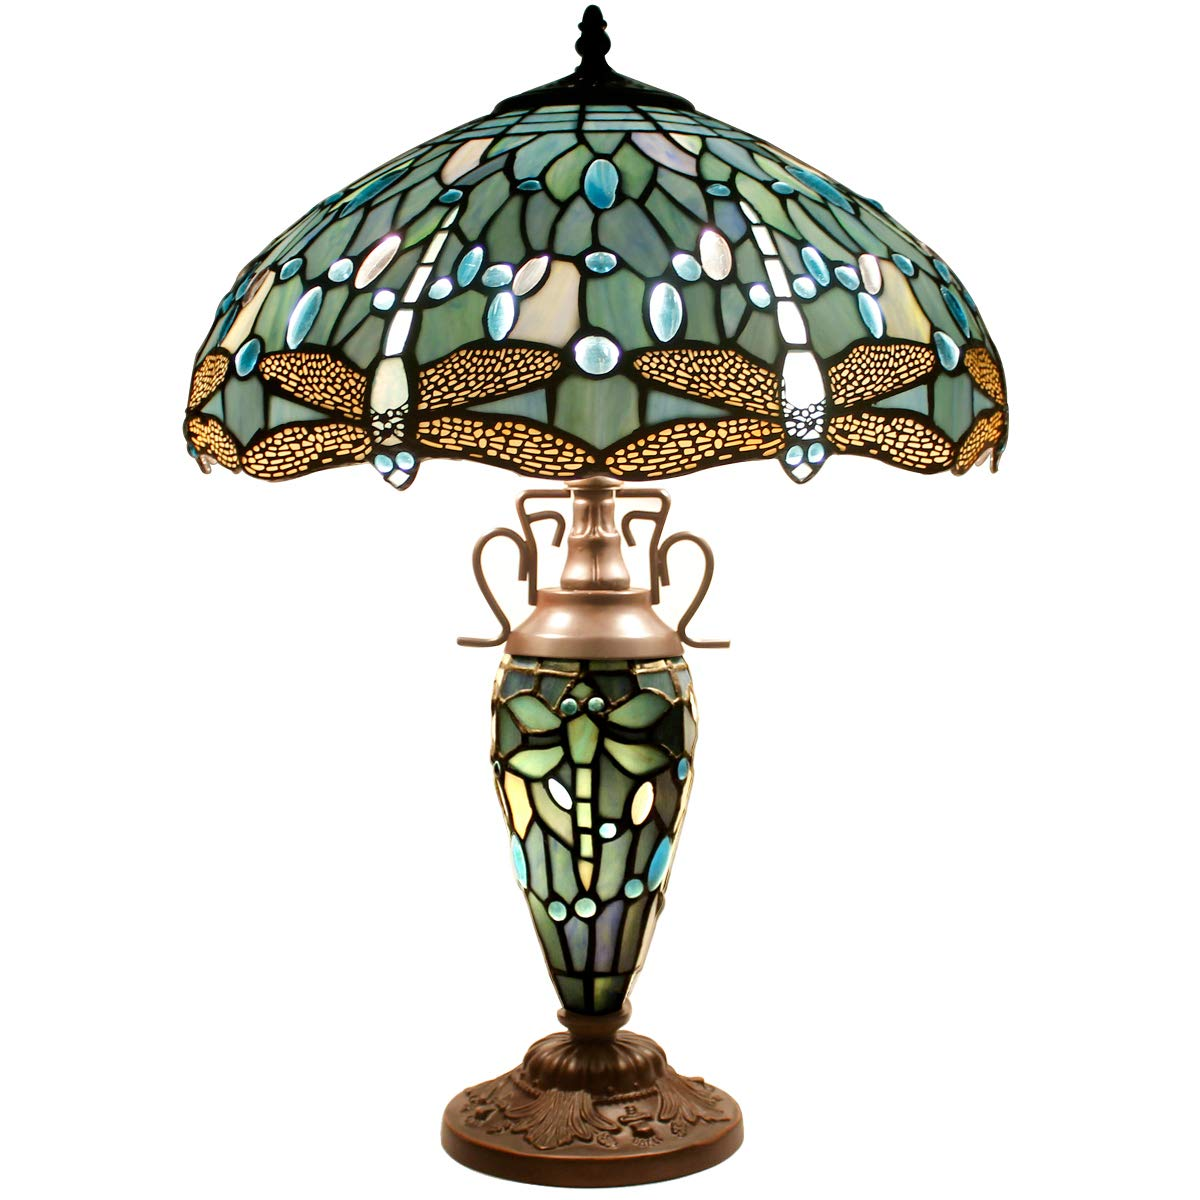 Tiffany Table Lamp 24 Inch Tall 3 Light Pull Chain Sea Blue Stained Glass Dragonfly Style Lampshade Beside Desk Lamp Antique Night Light Base for Living Room Coffee Table Bedroom S147 WERFACTORY